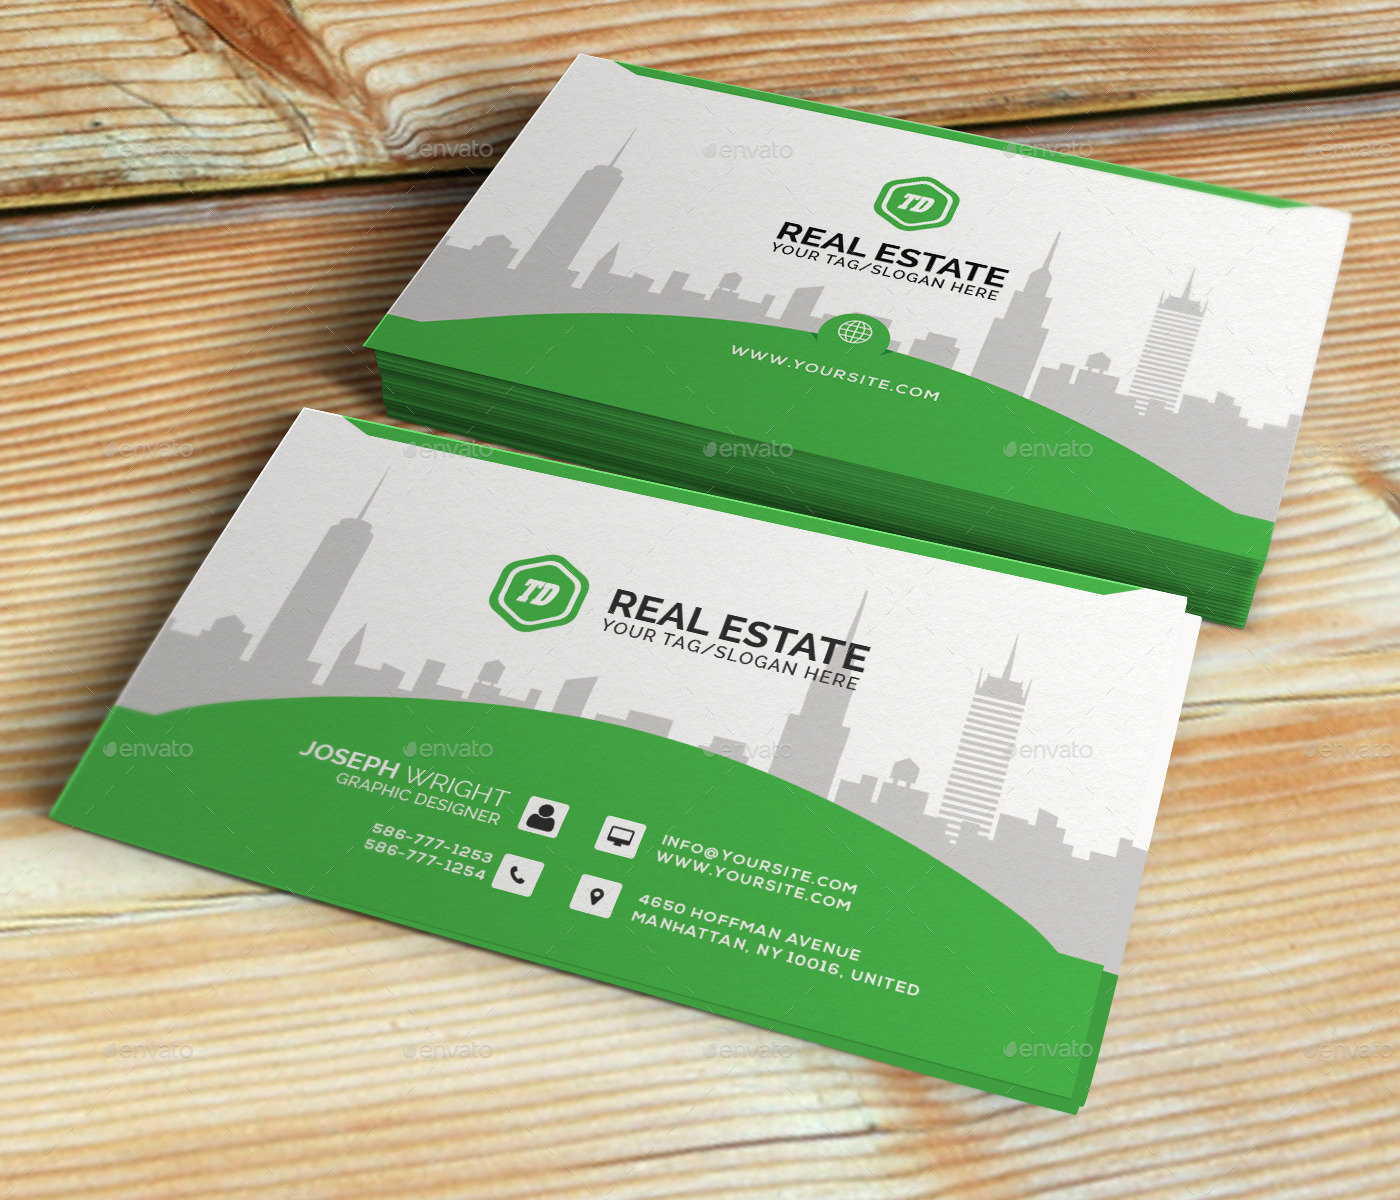 Real estate business card template by themedesk graphicriver template corporate business cards previewpreview 00g preview preview 01g previewpreview 02g accmission Choice Image